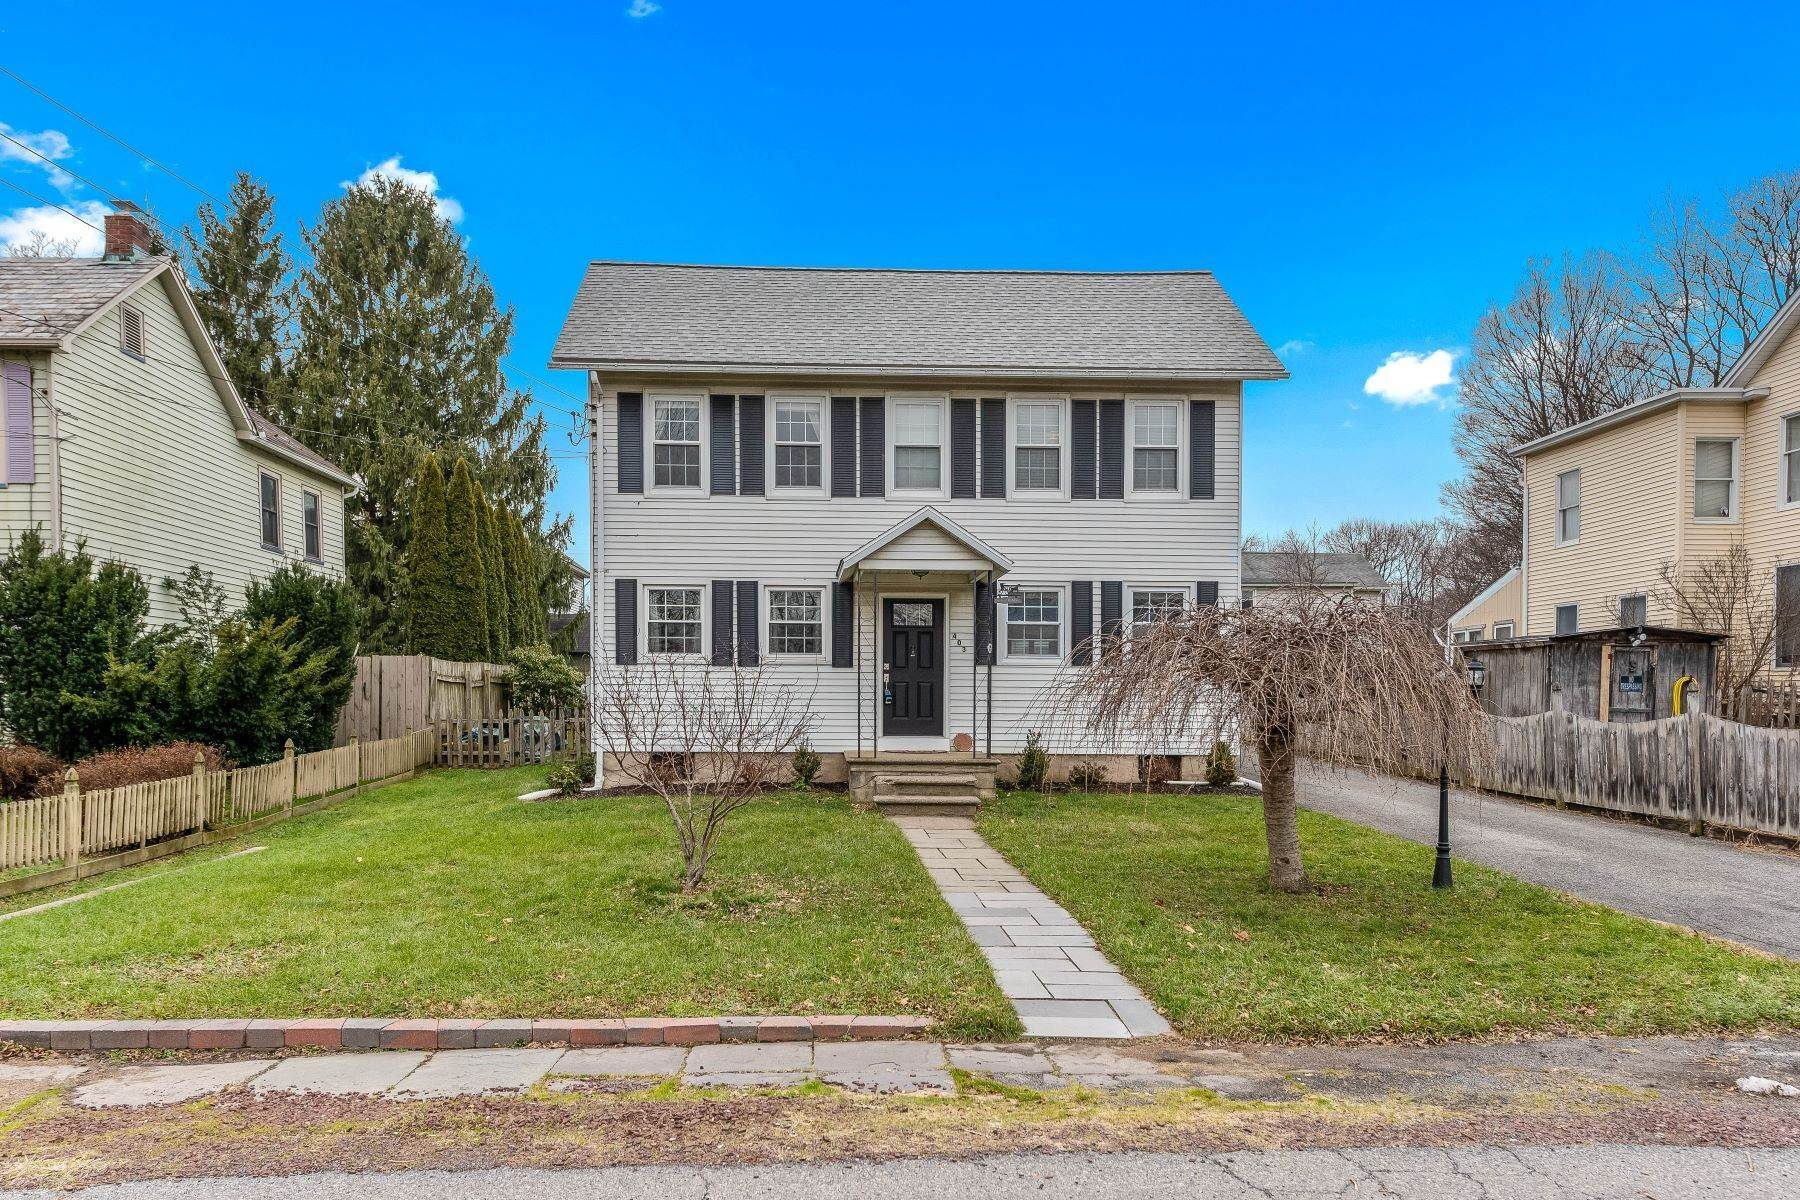 Single Family Homes for Sale at Move Right In! 403 Warren Street Greenwich Township, New Jersey 08886 United States